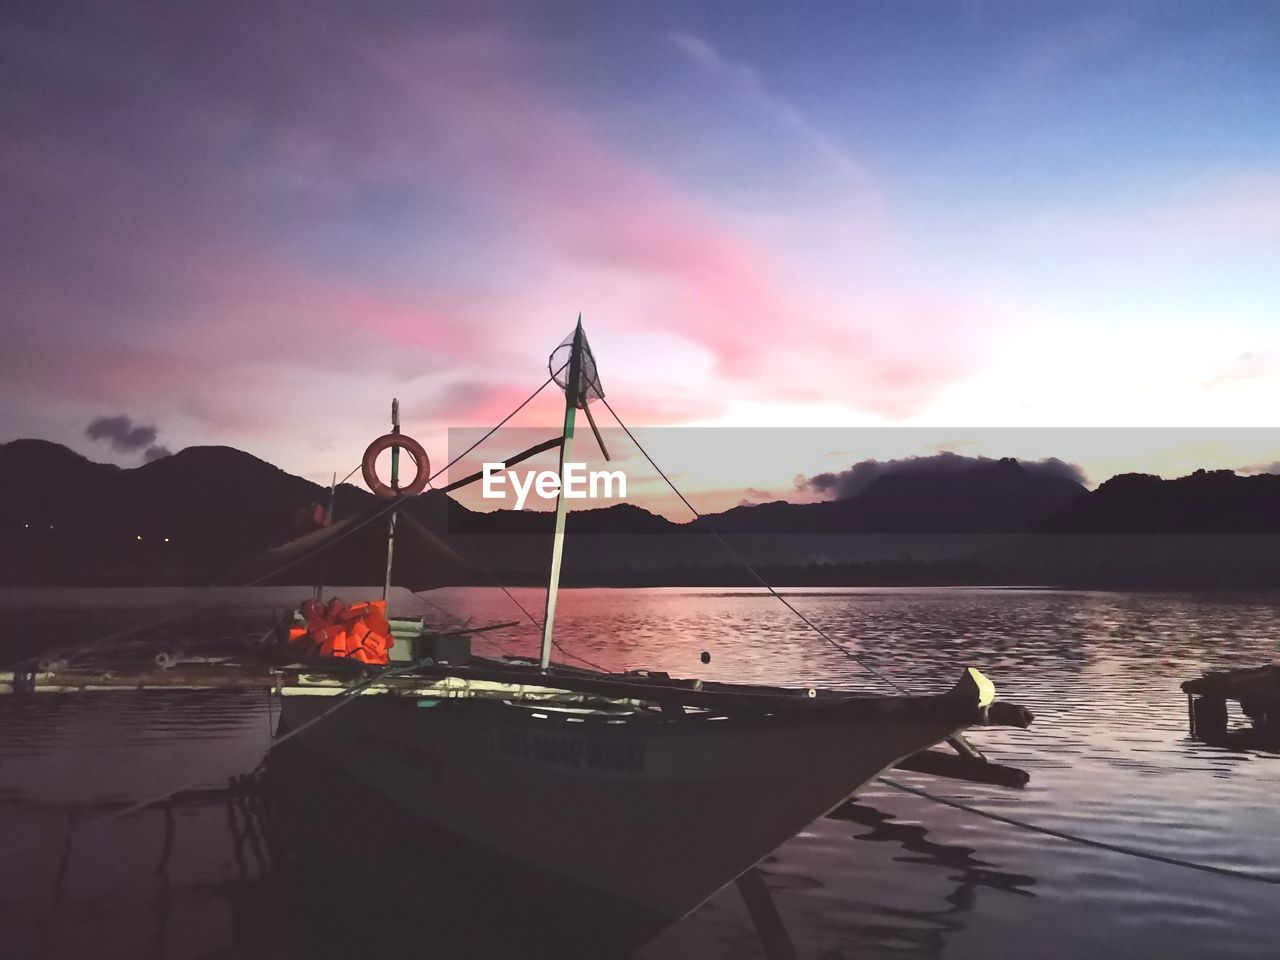 water, sky, sunset, beauty in nature, scenics - nature, cloud - sky, nautical vessel, tranquility, transportation, tranquil scene, nature, reflection, mode of transportation, no people, mountain, lake, silhouette, outdoors, bay, sailboat